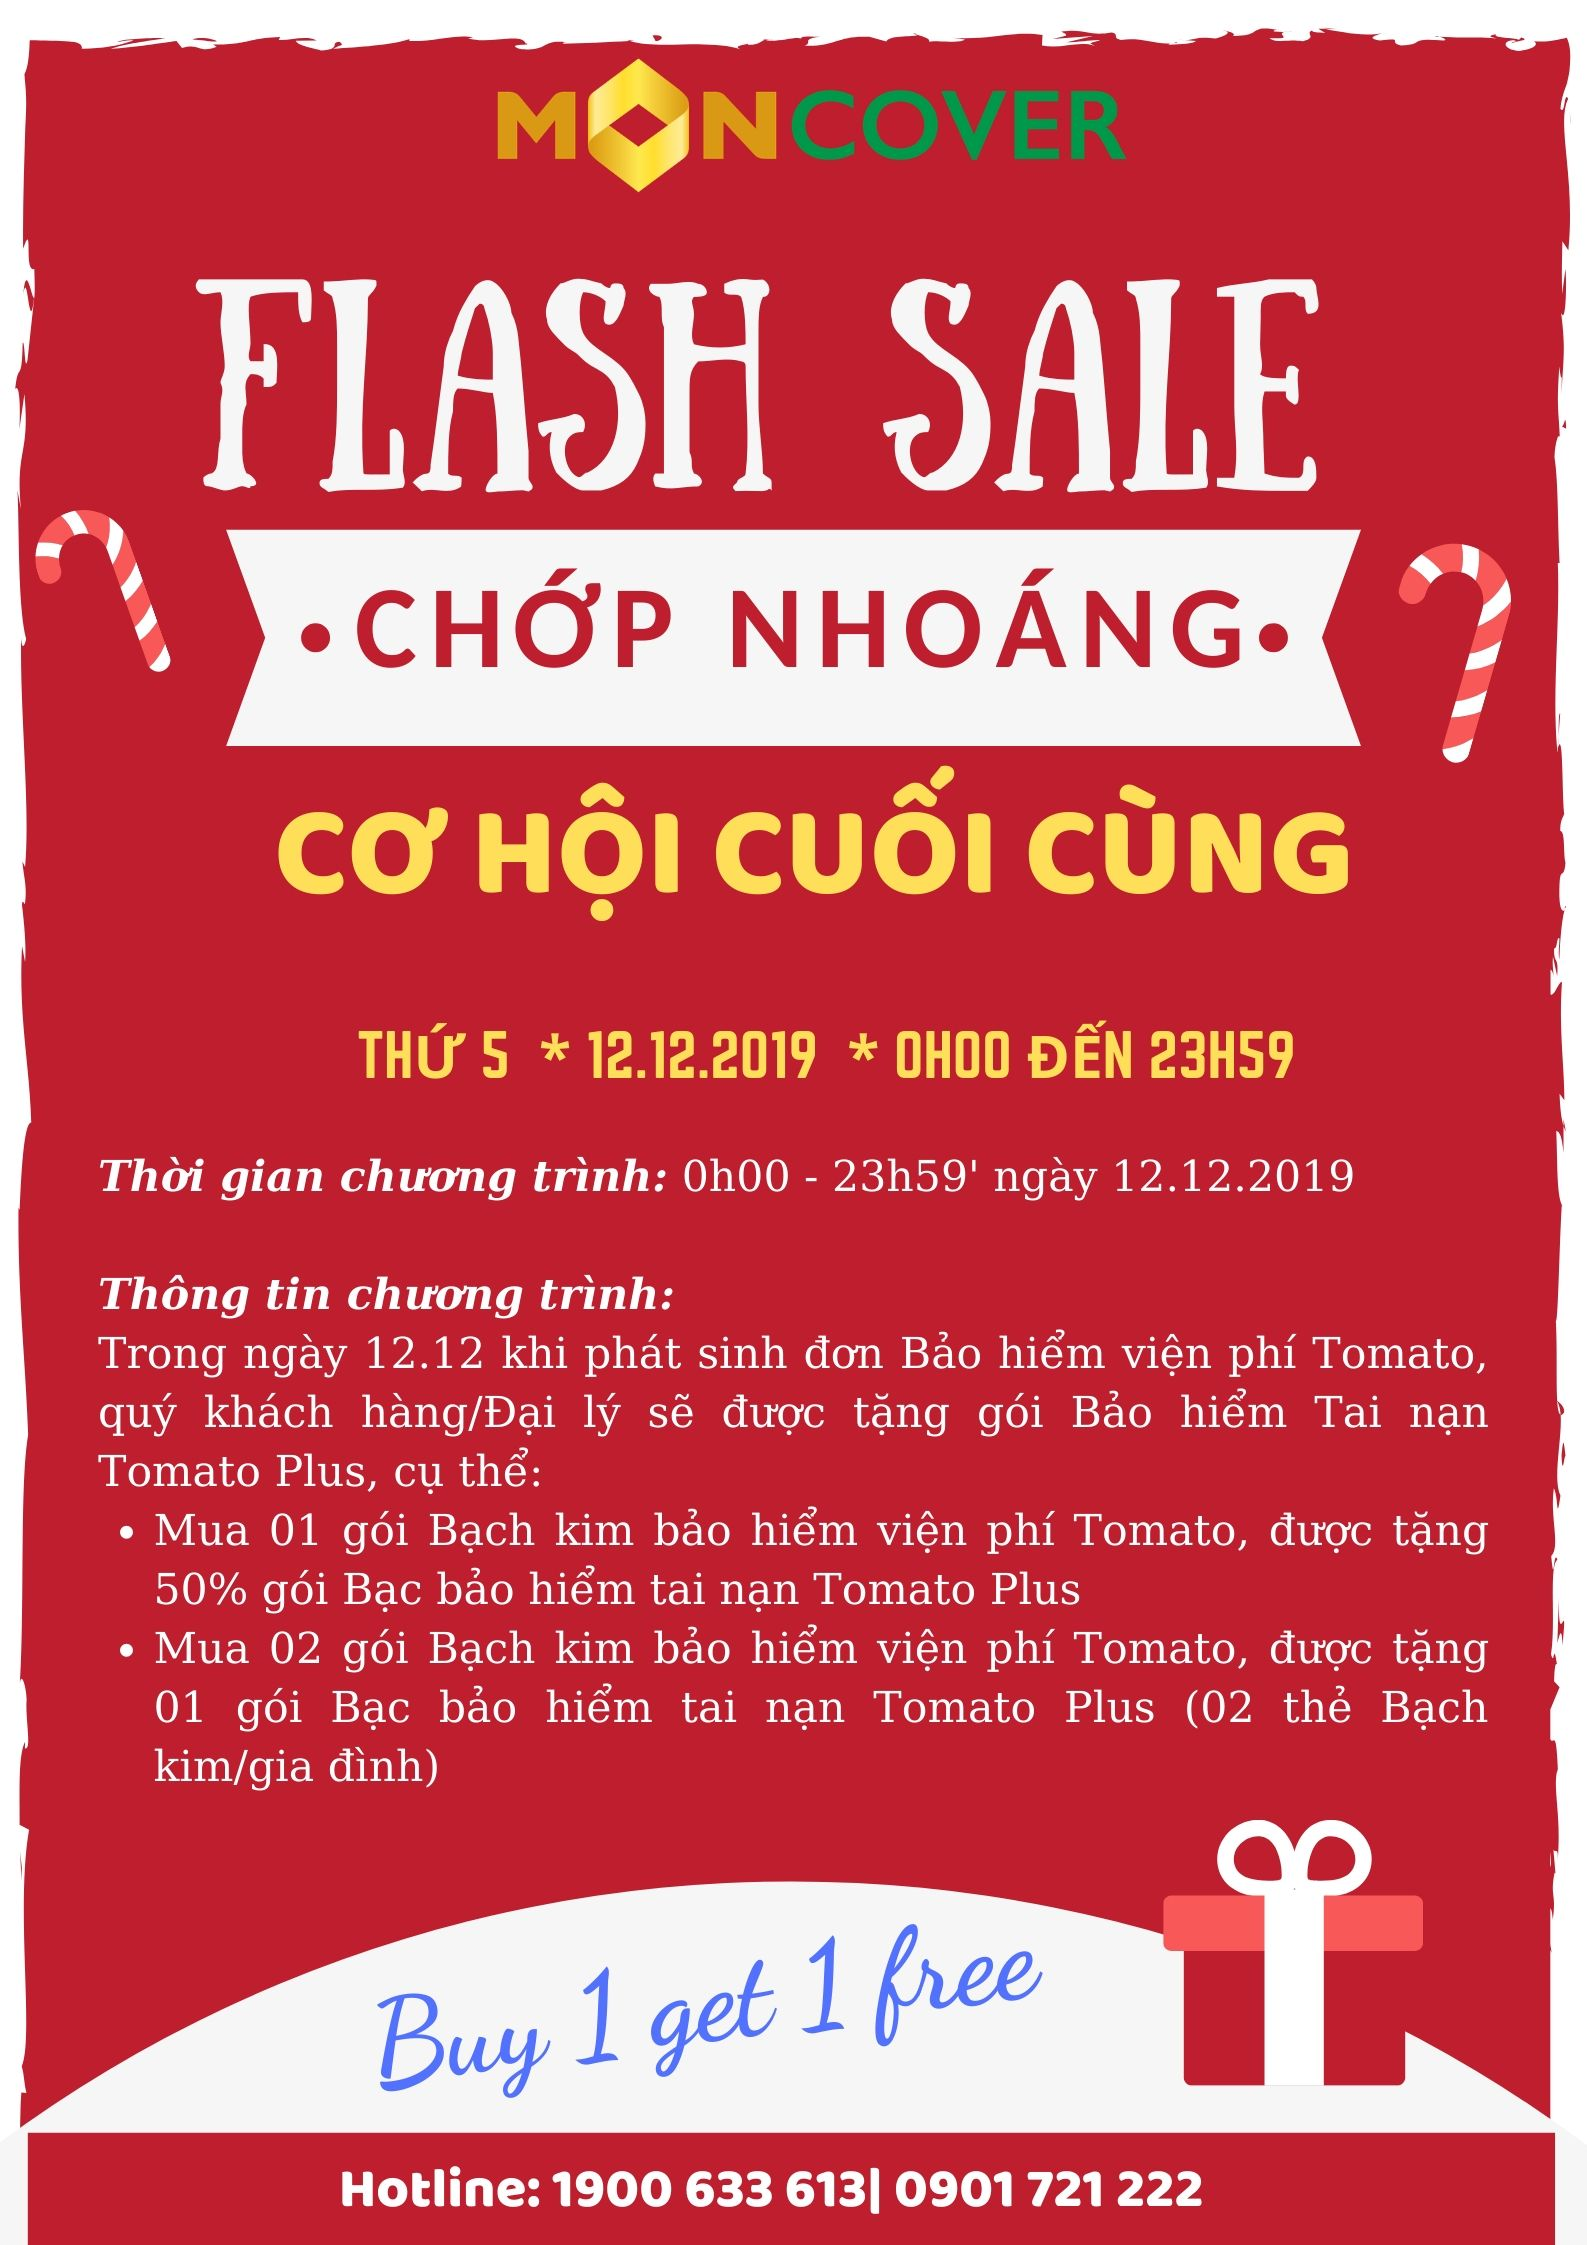 Flash sale chop nhoang